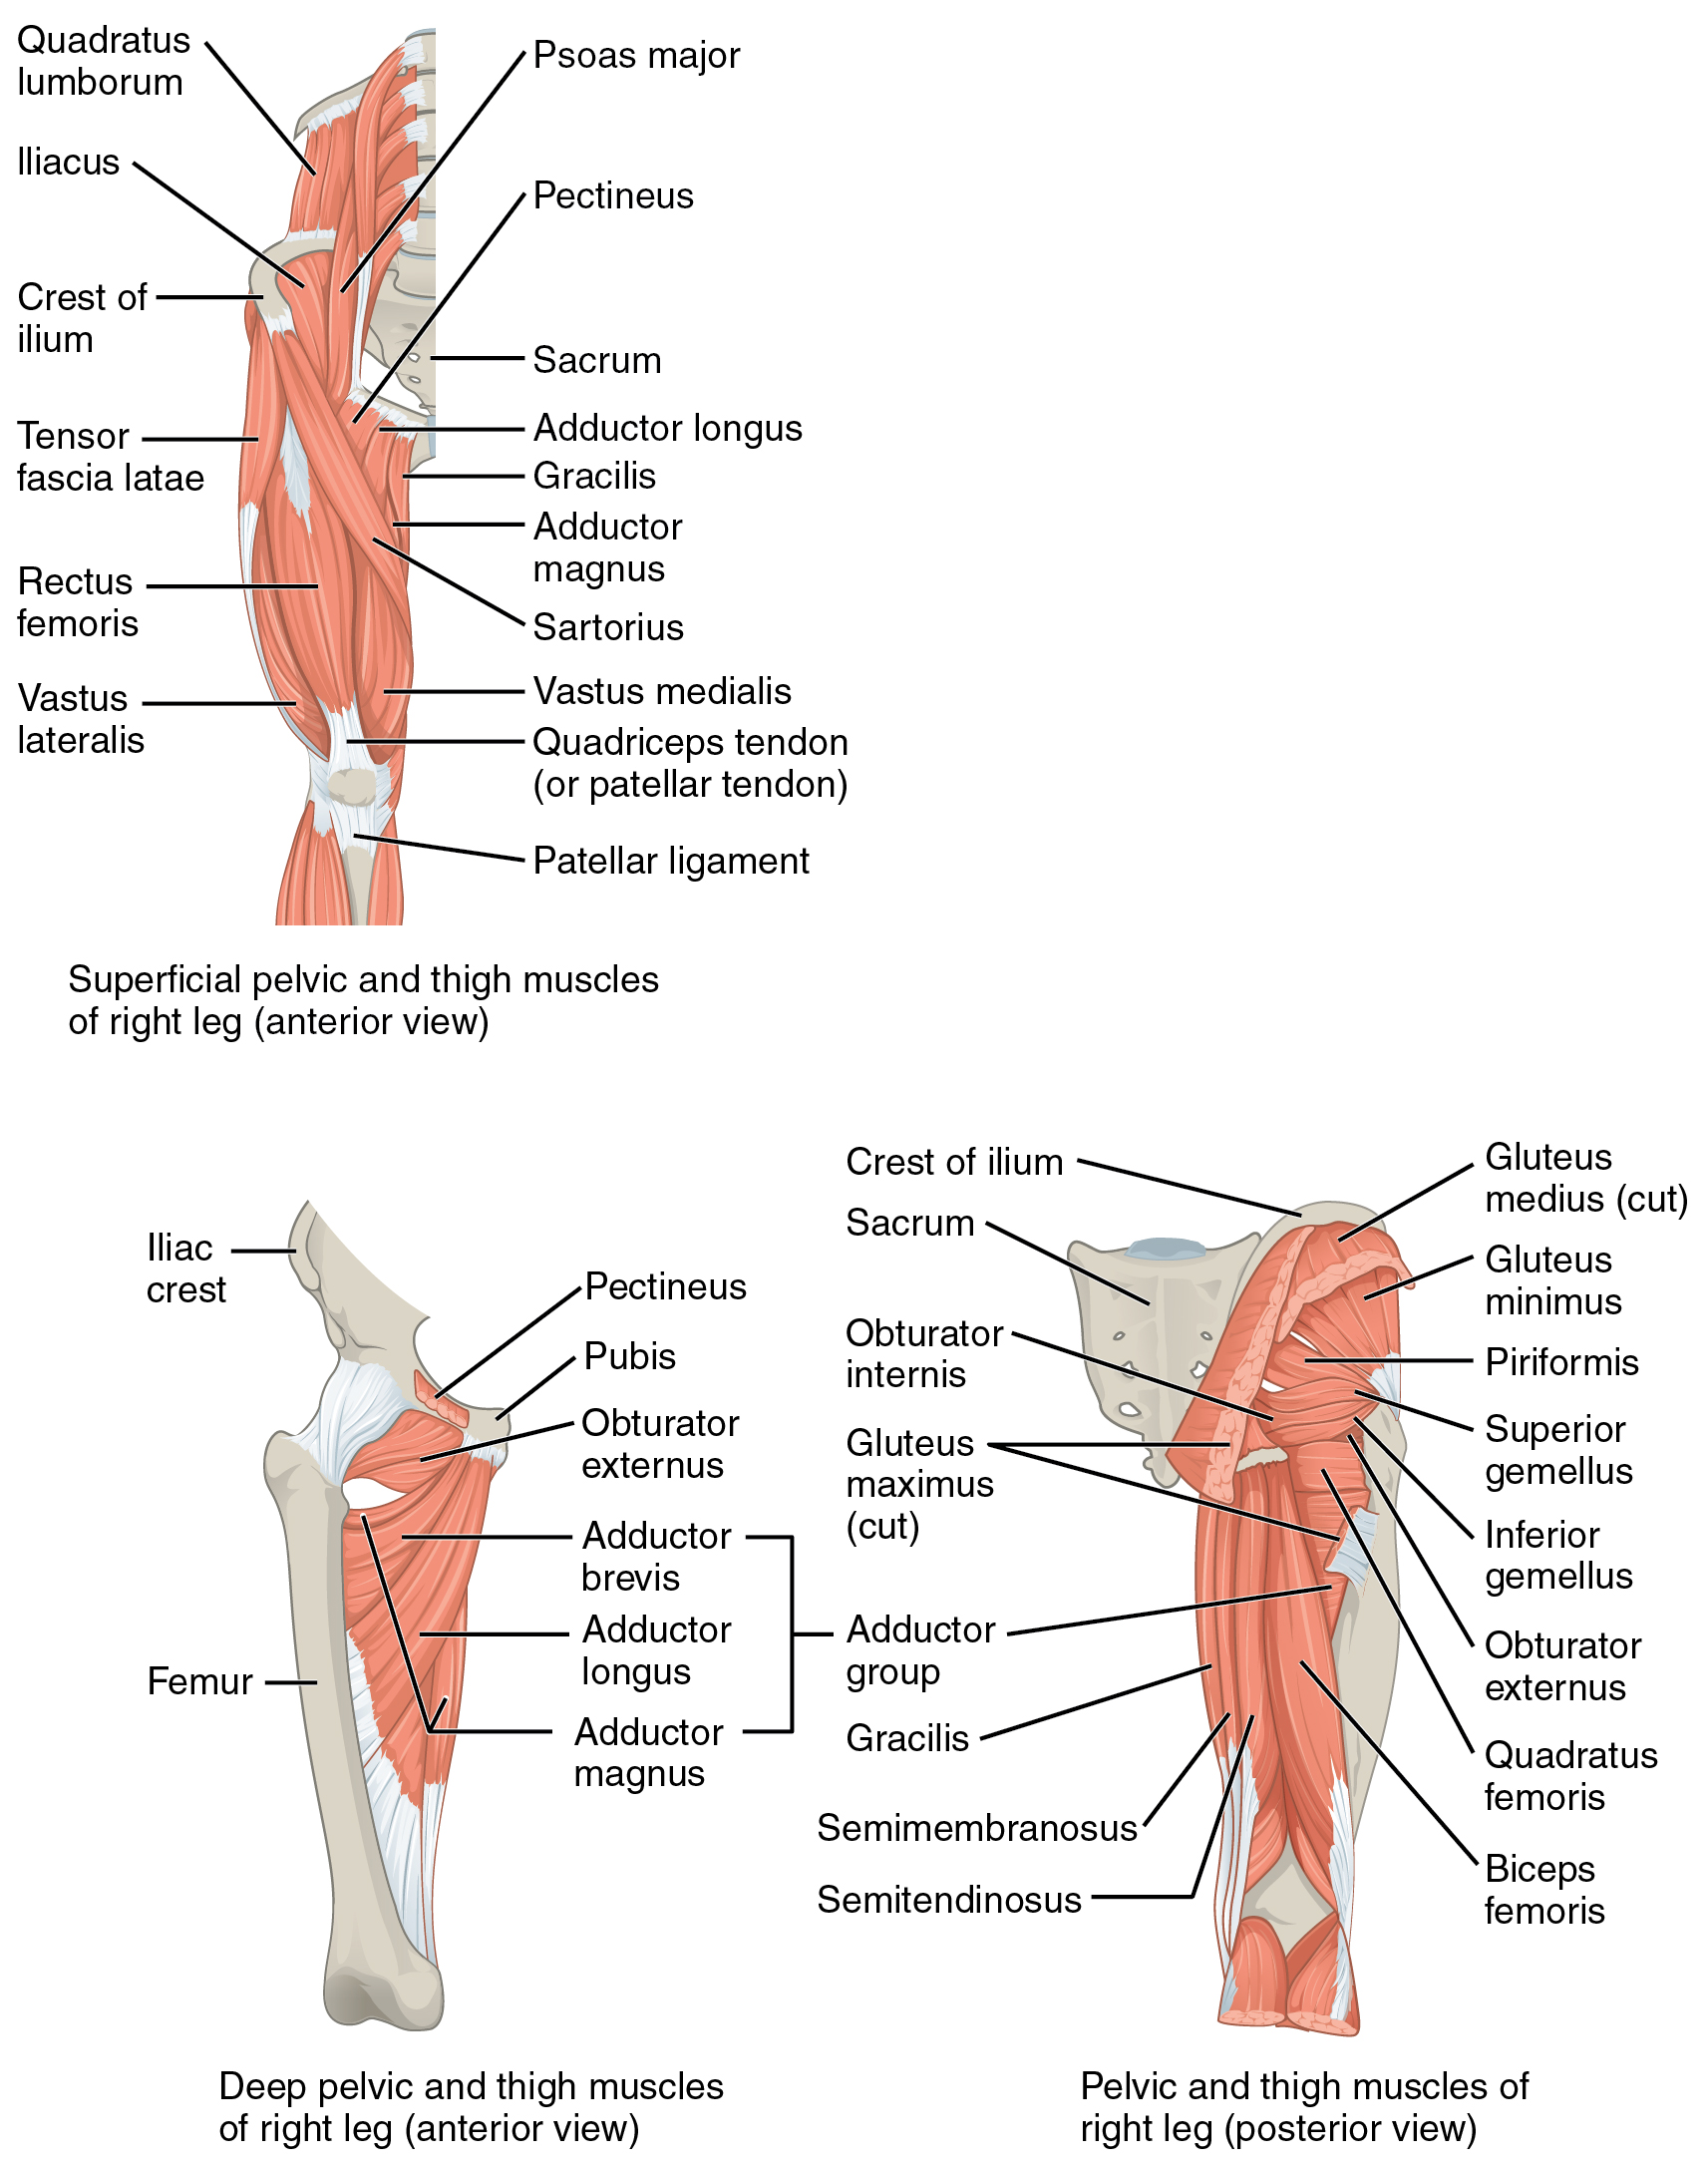 Appendicular Muscles Of The Pelvic Girdle And Lower Limbs Anatomy